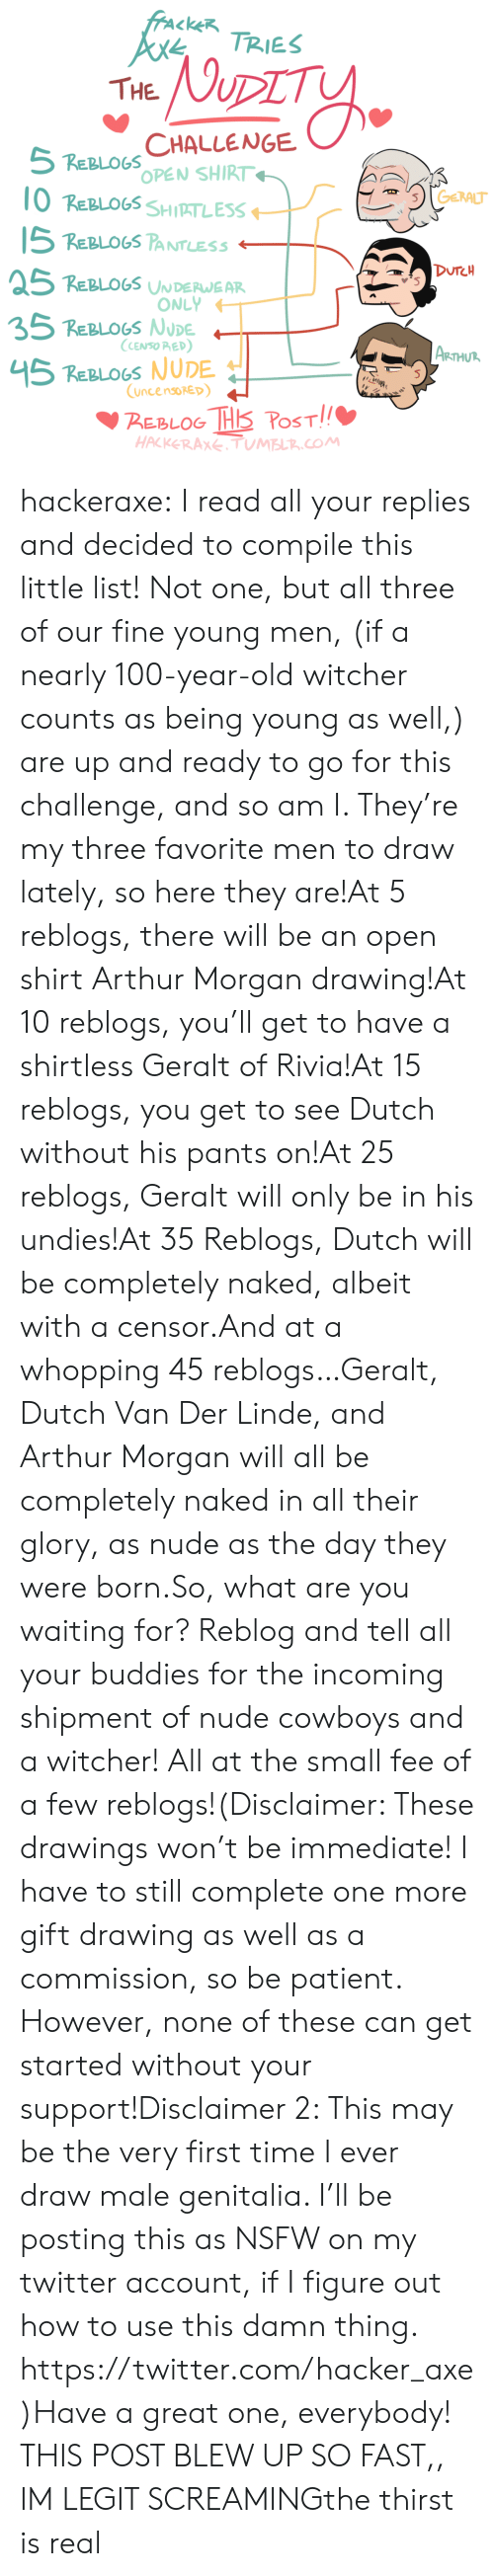 Arthur, Dallas Cowboys, and Nsfw: fracke TRIES  NUDIT  THE  5 REBLOGS CHALLENGE  OPEN SHIRT  10 REBLOGS SHIPTLESS  GERALT  15 REBLOGS PANTLESS  DUTCH  25 REBLOGS UNDERWEAR  ONLY  35 REBLOGS NUDE  CENSO PAED)  |ARTHUR  45 REBLOGS NUDE  CuncensoRED  BEBLOG THS PoST  HACKERAXE. TUMBLR.COM hackeraxe:  I read all your replies and decided to compile this little list! Not one, but all three of our fine young men, (if a nearly 100-year-old witcher counts as being young as well,) are up and ready to go for this challenge, and so am I. They're my three favorite men to draw lately, so here they are!At 5 reblogs, there will be an open shirt Arthur Morgan drawing!At 10 reblogs, you'll get to have a shirtless Geralt of Rivia!At 15 reblogs, you get to see Dutch without his pants on!At 25 reblogs, Geralt will only be in his undies!At 35 Reblogs, Dutch will be completely naked, albeit with a censor.And at a whopping 45 reblogs…Geralt, Dutch Van Der Linde, and Arthur Morgan will all be completely naked in all their glory, as nude as the day they were born.So, what are you waiting for? Reblog and tell all your buddies for the incoming shipment of nude cowboys and a witcher! All at the small fee of a few reblogs!(Disclaimer: These drawings won't be immediate! I have to still complete one more gift drawing as well as a commission, so be patient. However, none of these can get started without your support!Disclaimer 2: This may be the very first time I ever draw male genitalia. I'll be posting this as NSFW on my twitter account, if I figure out how to use this damn thing. https://twitter.com/hacker_axe)Have a great one, everybody!  THIS POST BLEW UP SO FAST,, IM LEGIT SCREAMINGthe thirst is real